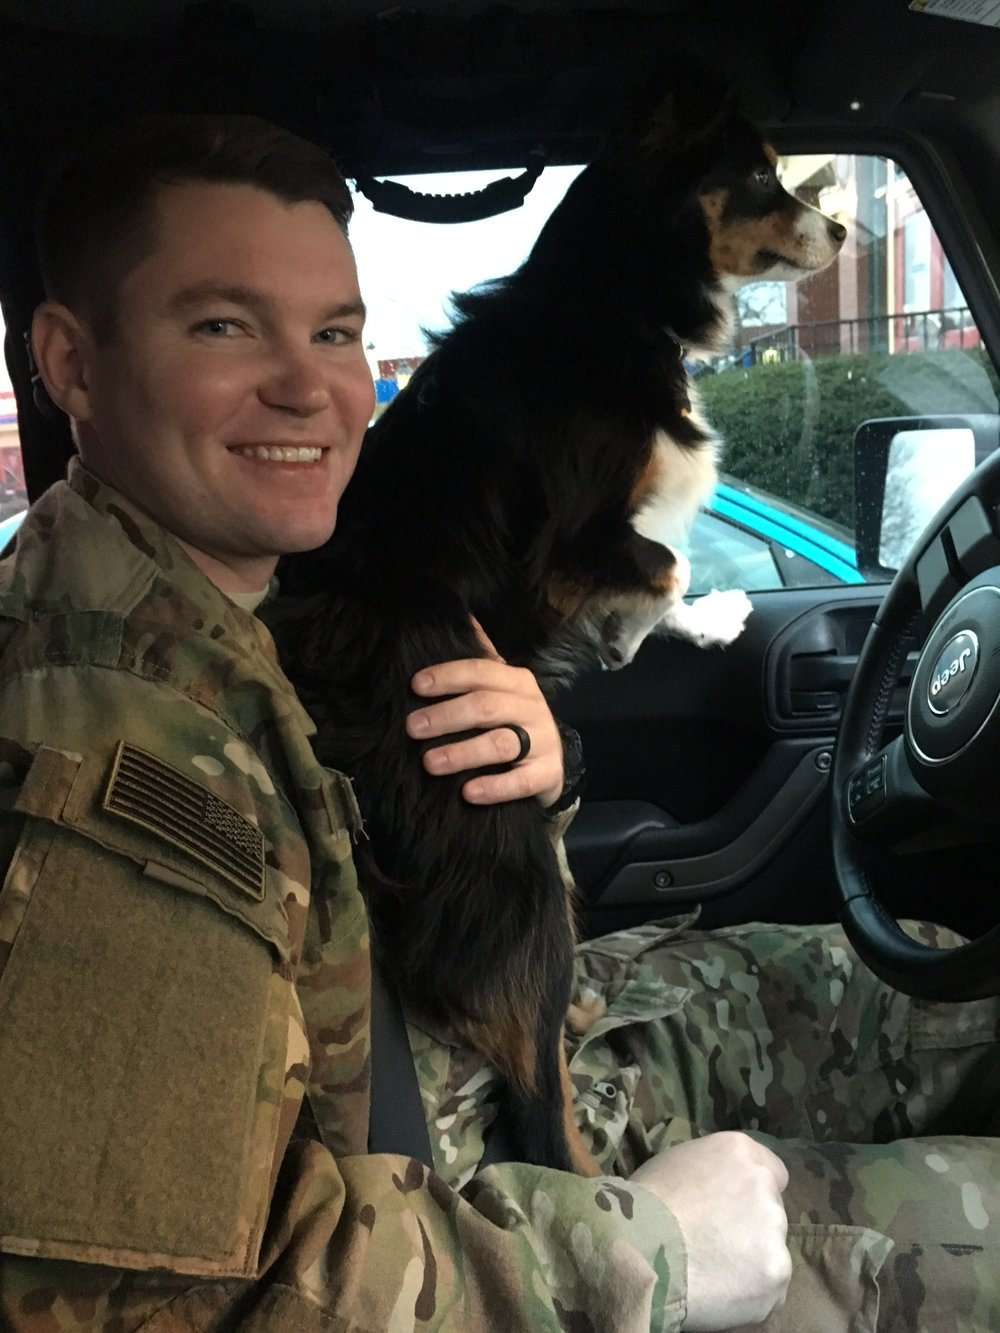 Enjoying a final Jeep ride with his favorite co-pilot